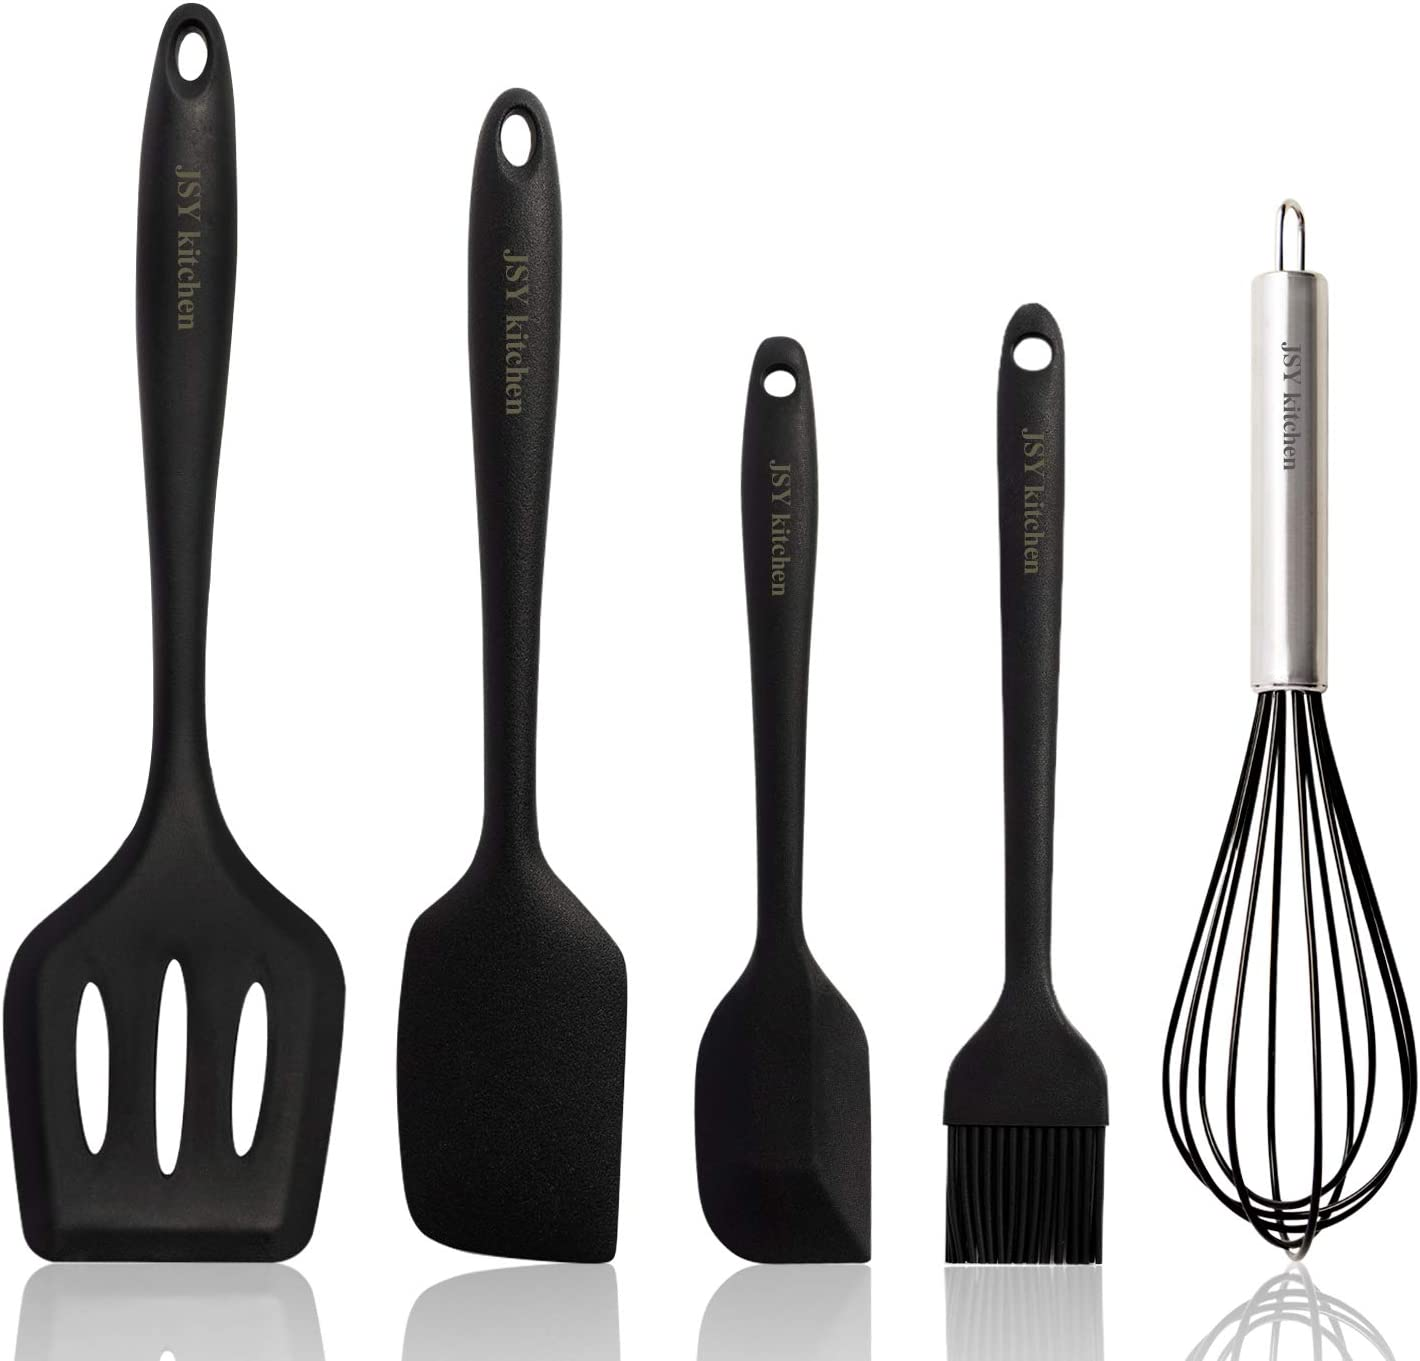 JSY Heat Resistant Silicone Spatula Set of 5,Food Grade Silicone Spatulas Set Rubber kitchenware set for Non-Stick Rubber Spatula Kitchen Utensils for Cooking, Baking, and Mixing